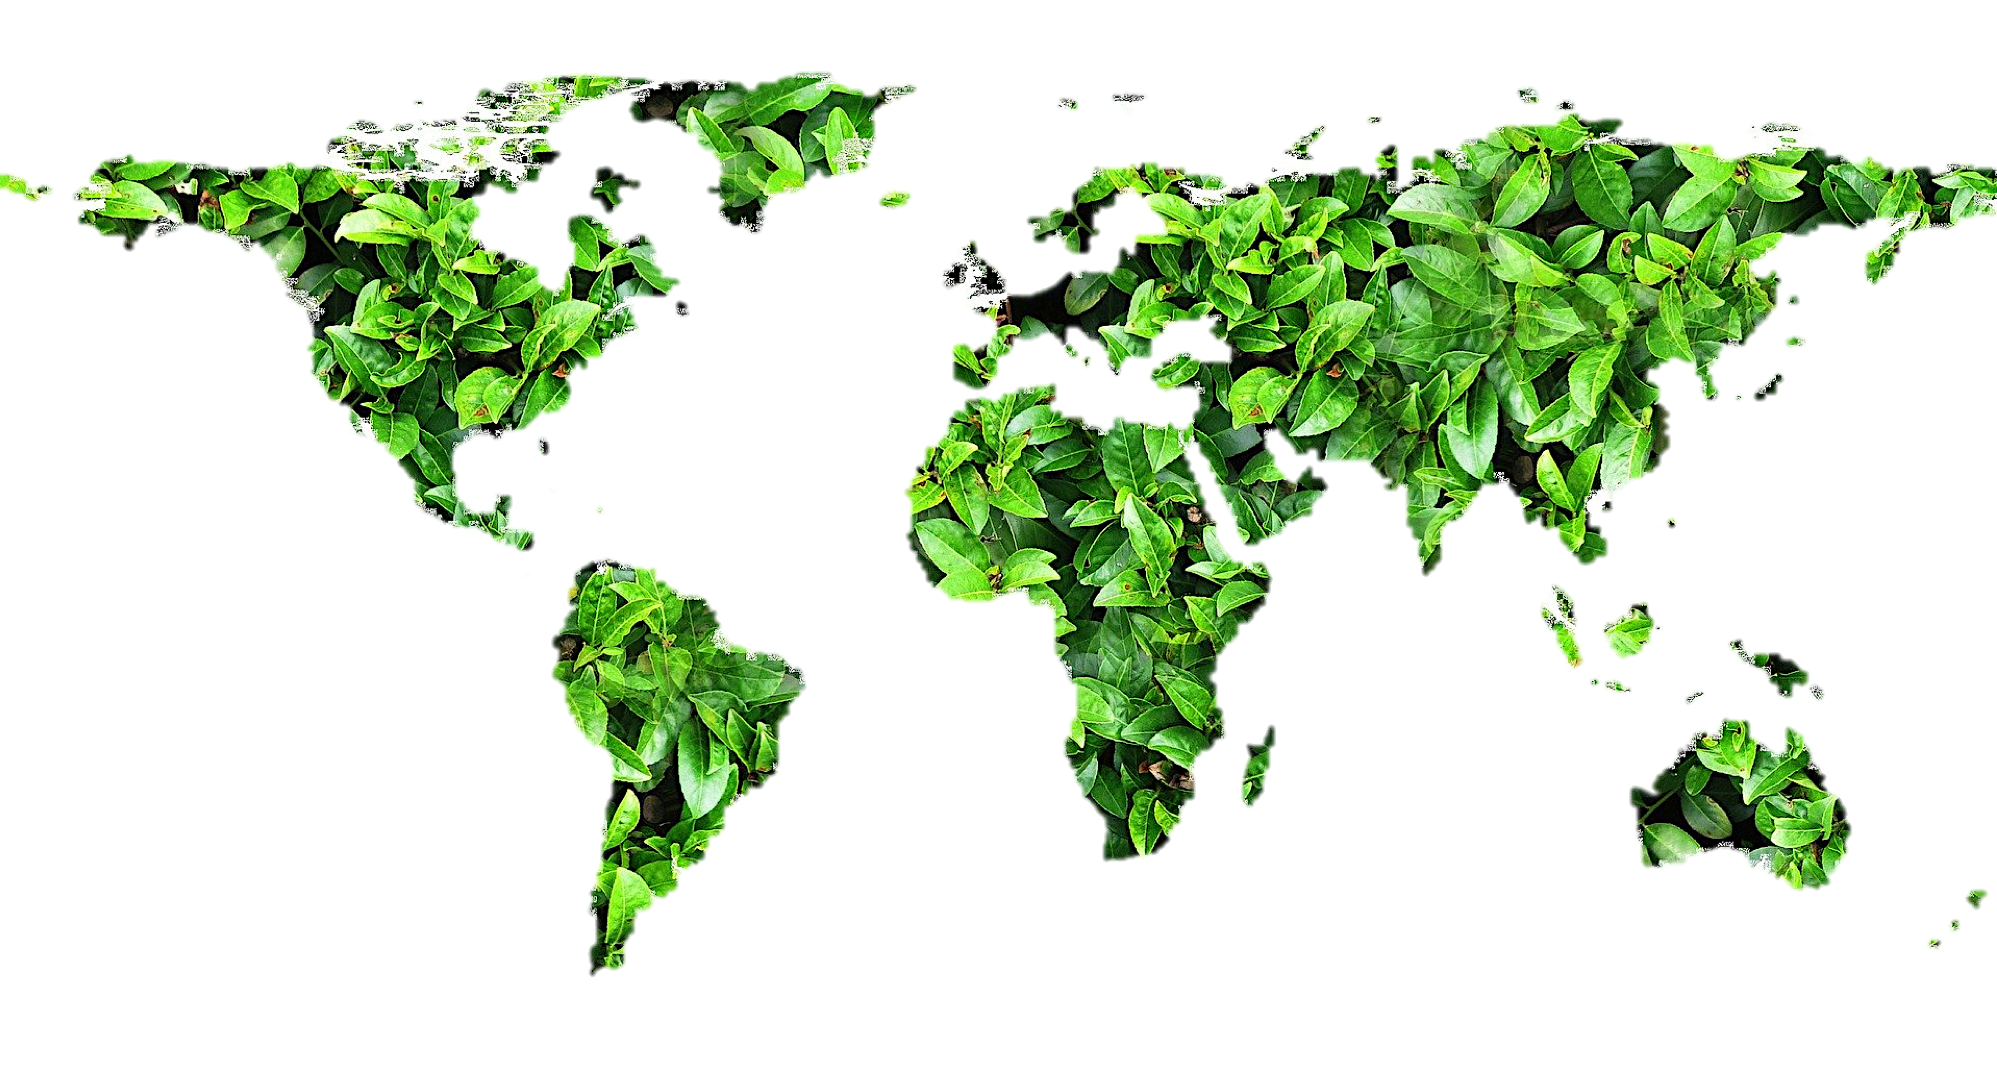 green leaves used to form world map image | One Wear Freedom Sustainability Pledge